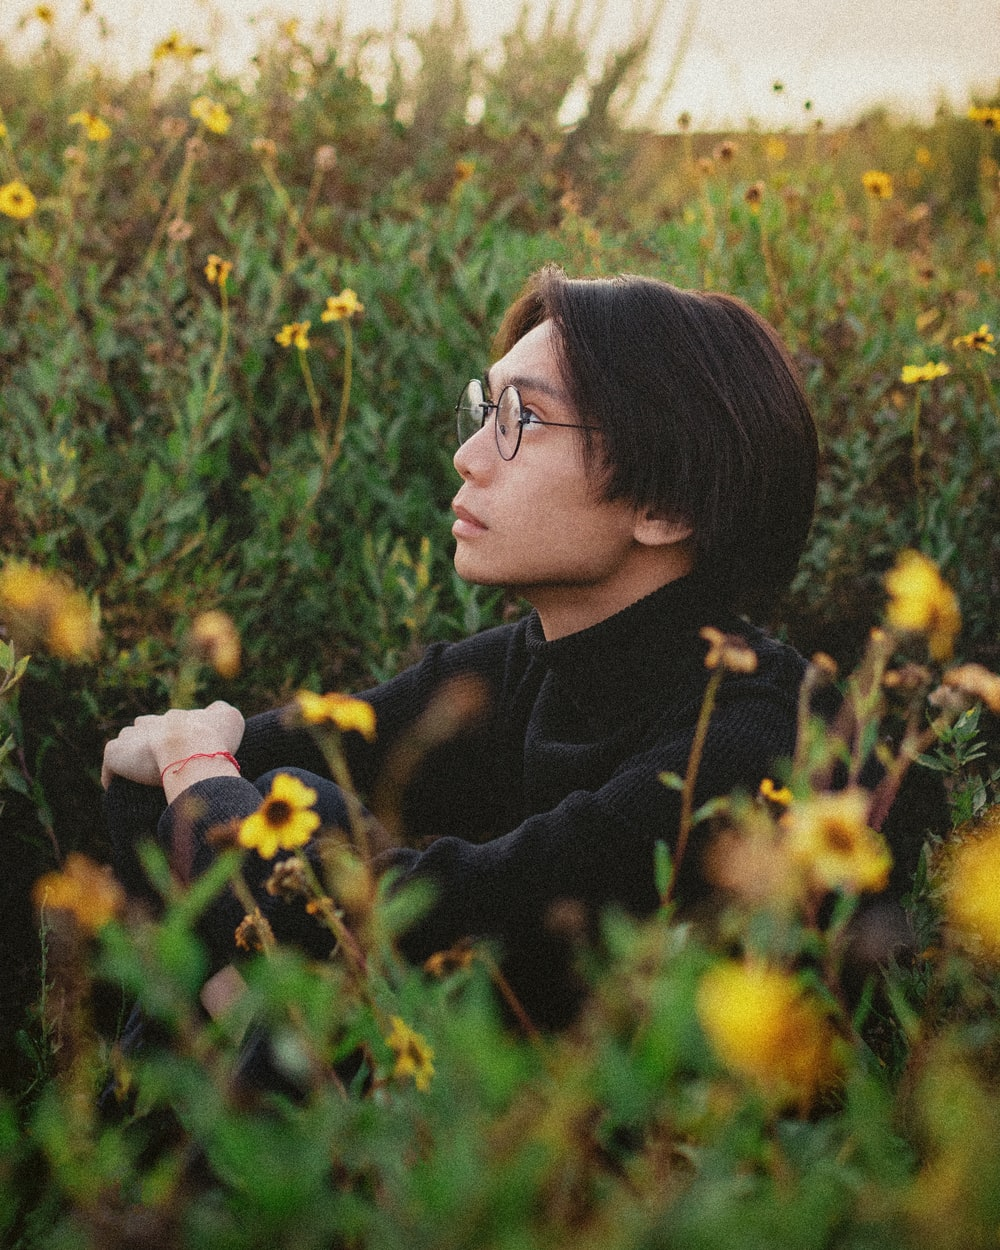 woman in black jacket wearing black framed eyeglasses sitting on yellow flower field during daytime